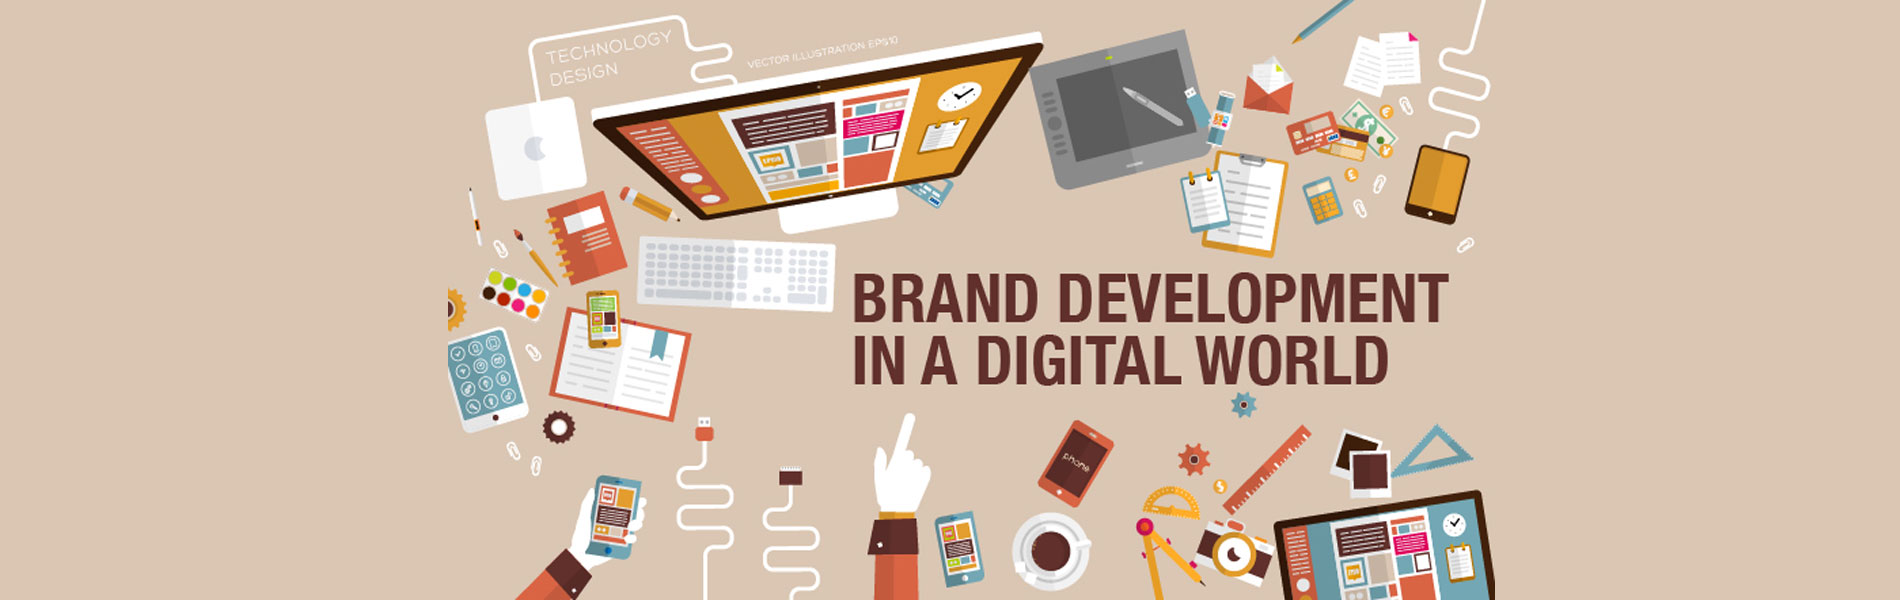 Digital Brand Development